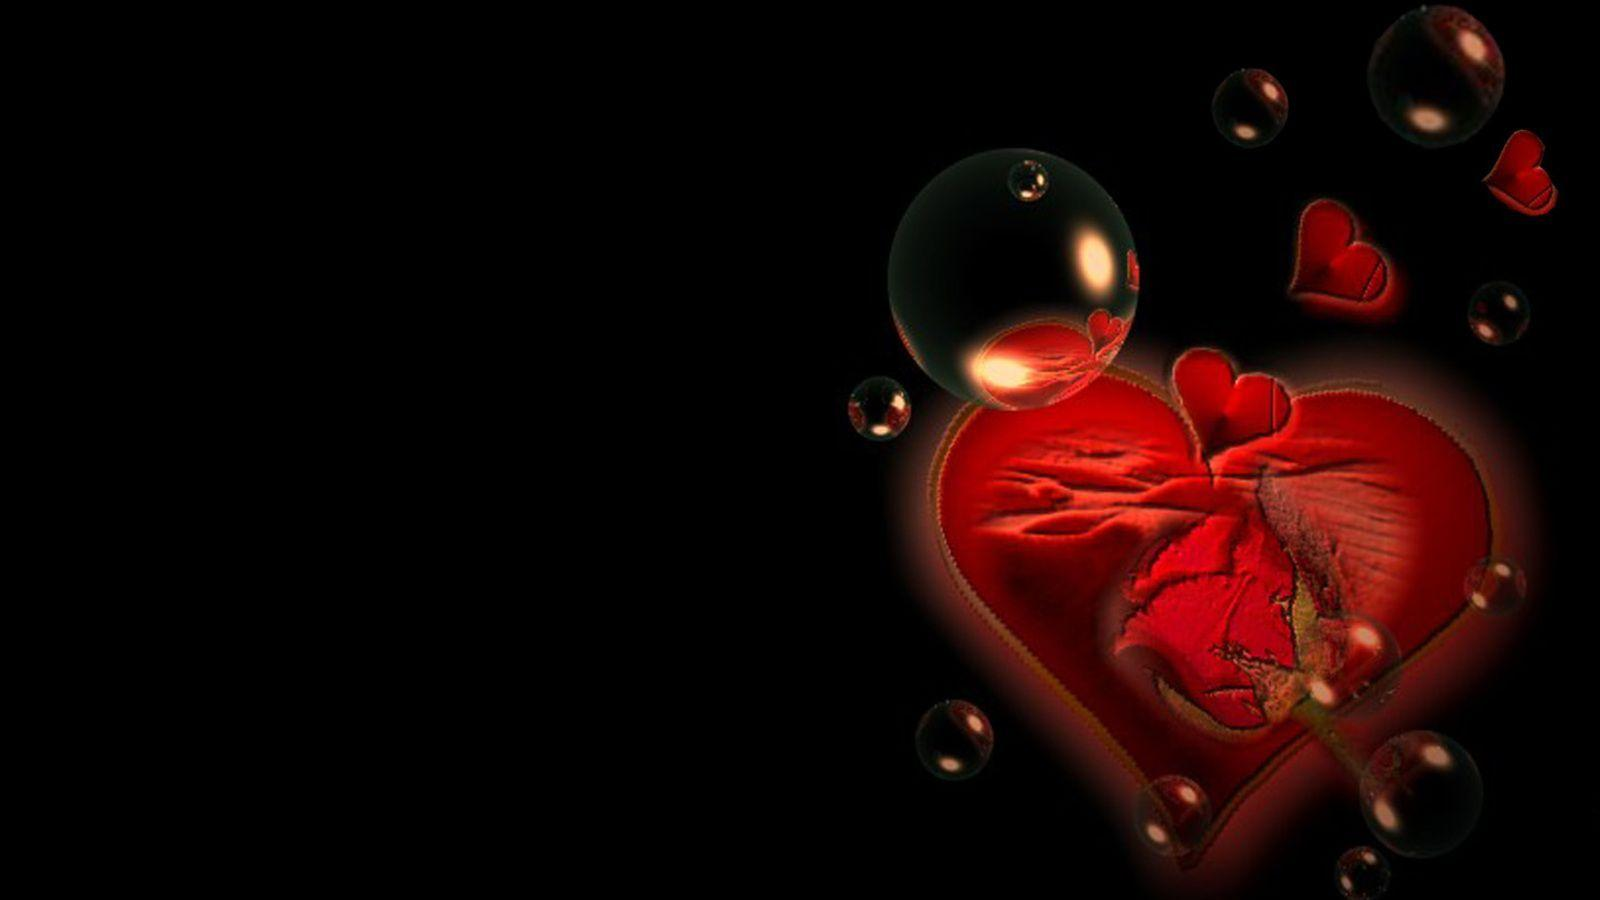 Love Wallpaper Hd 3d : Love 3D Wallpapers - Wallpaper cave